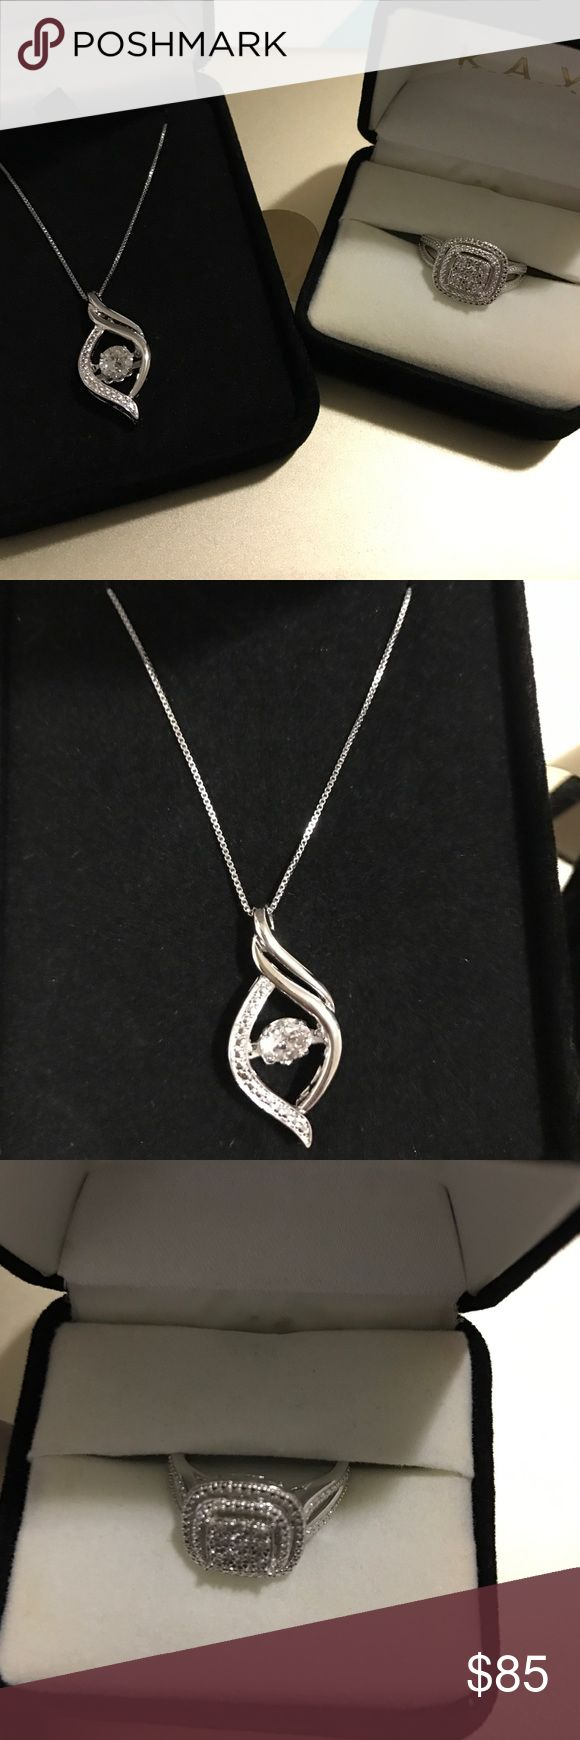 34e758316 Kay bundle Get both the necklace and the ring both sterling silver ring  diamond and necklace